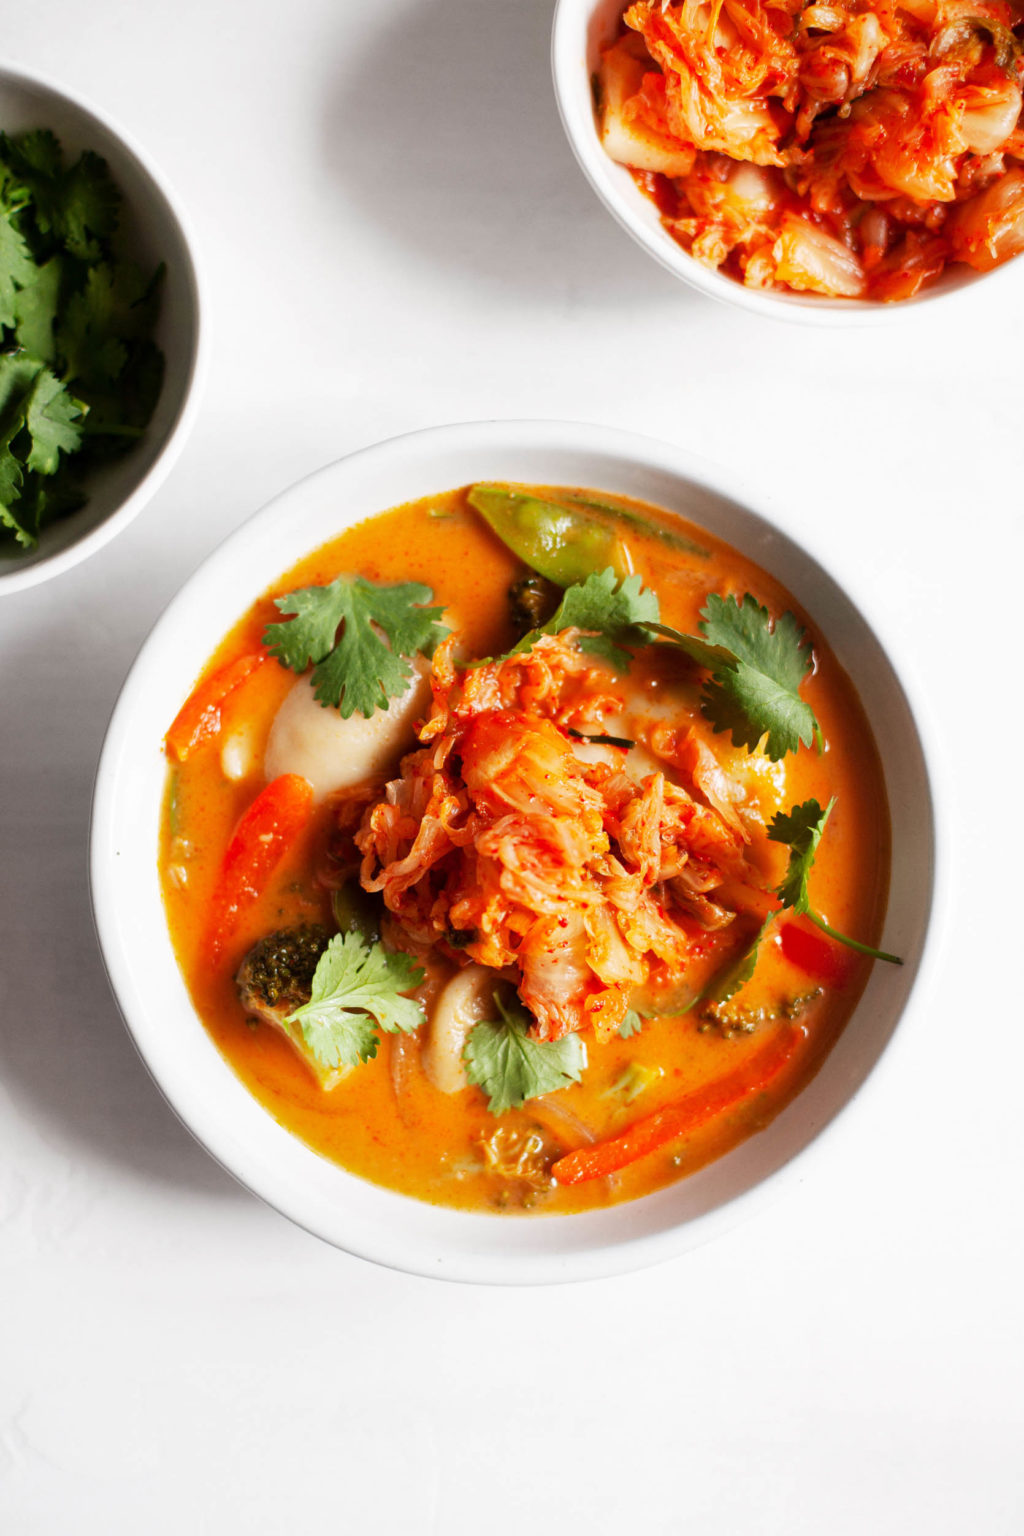 A bowl of red curry soup, garnished with a generous ball of kimchi.